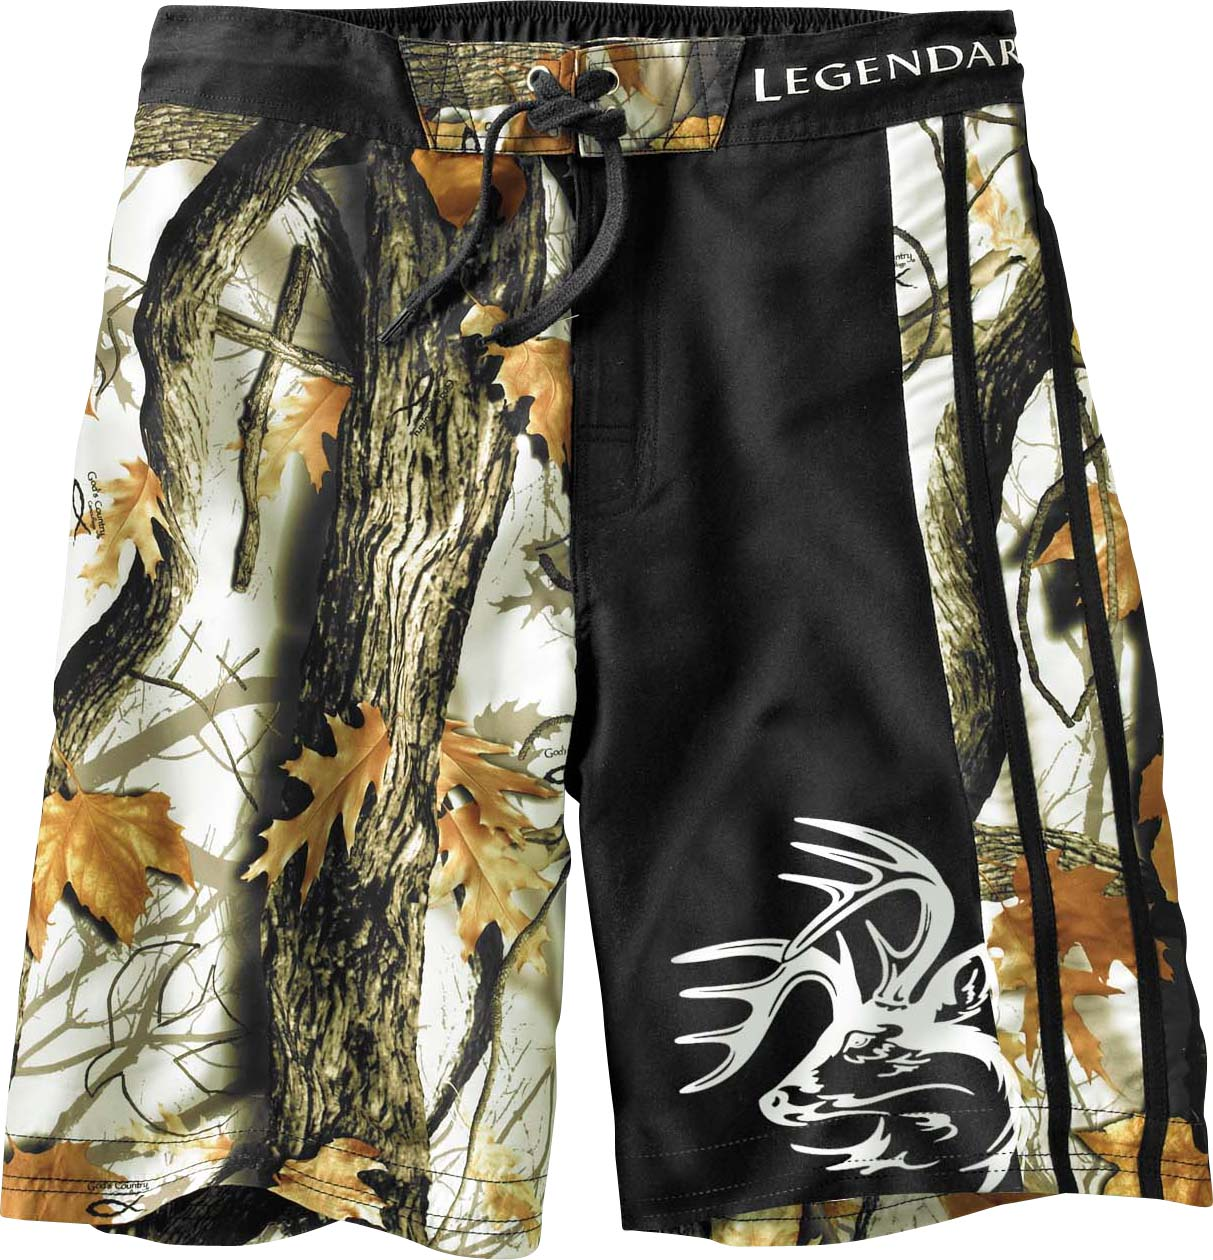 474d0b60d7 Lakeside Swim Shorts | Legendary Whitetails